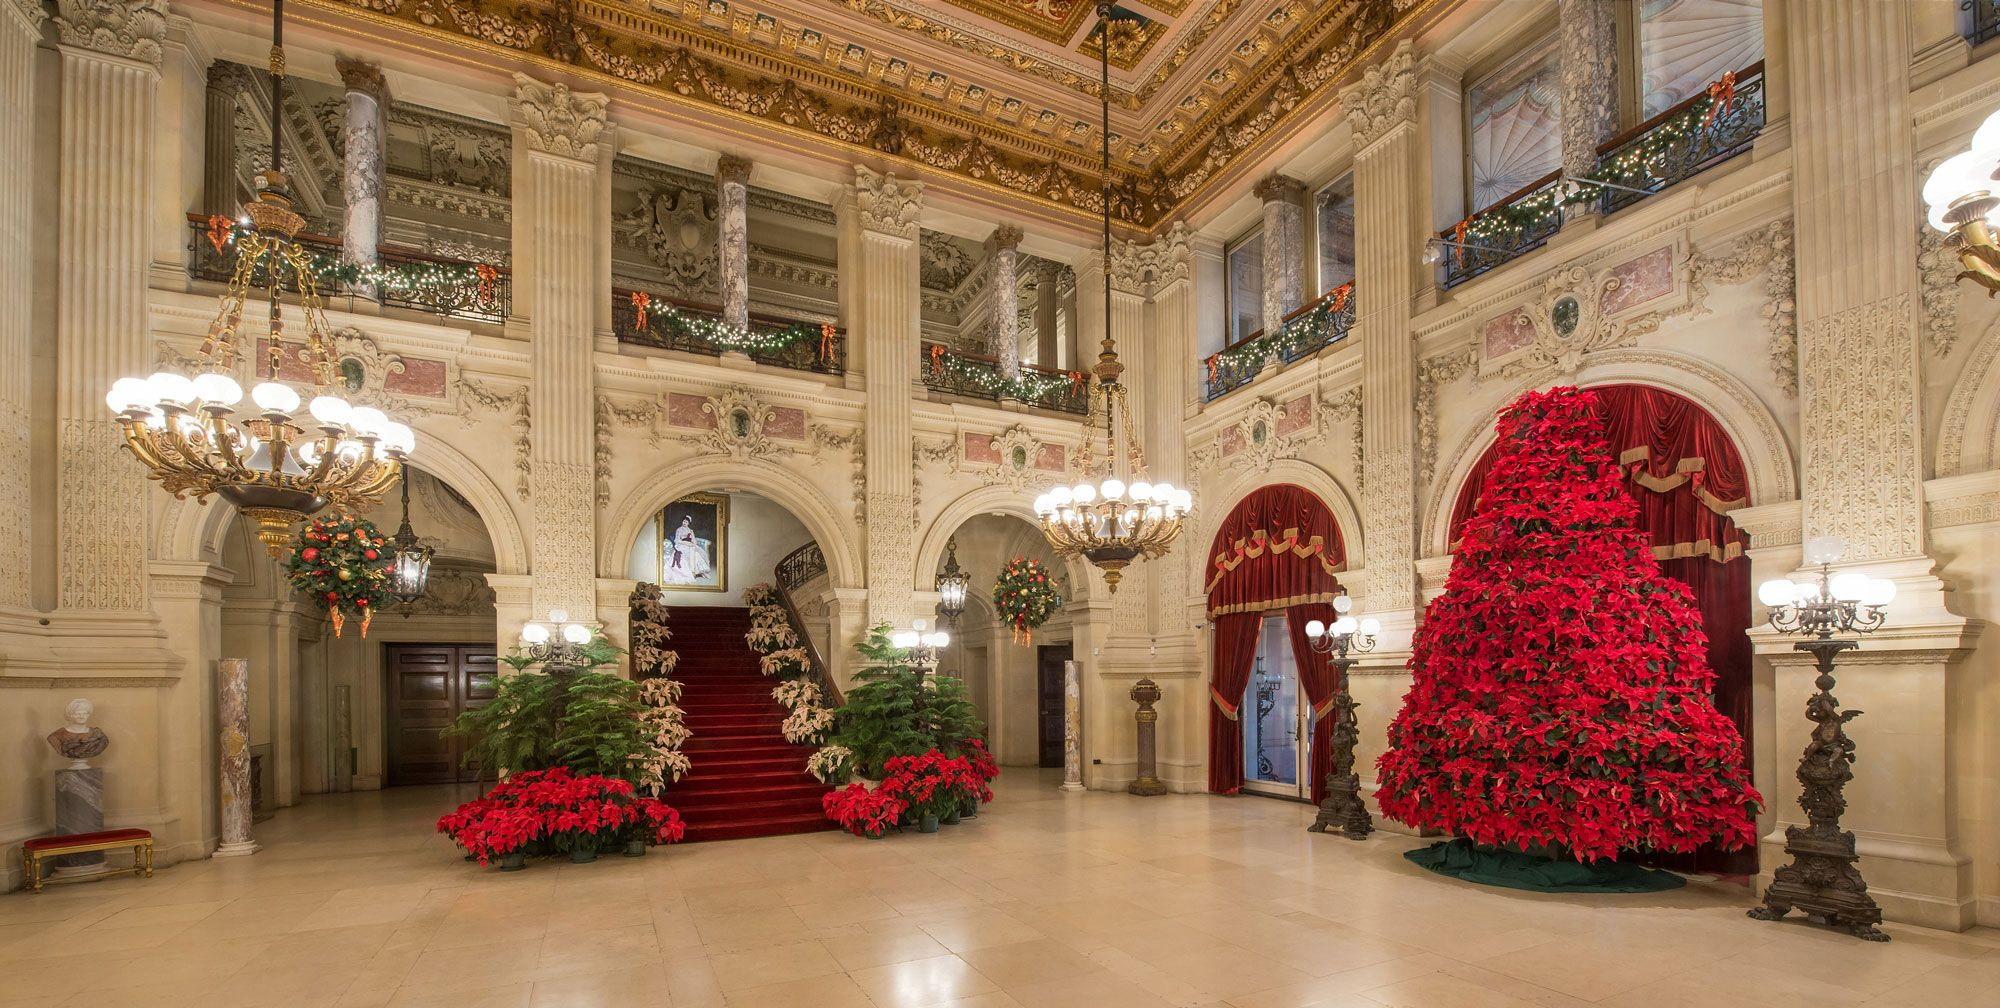 Newport Mansions Christmas 2021 How Newport S Mansions Are Decorated For Christmas The Breakers Christmas Decor Is Legendary